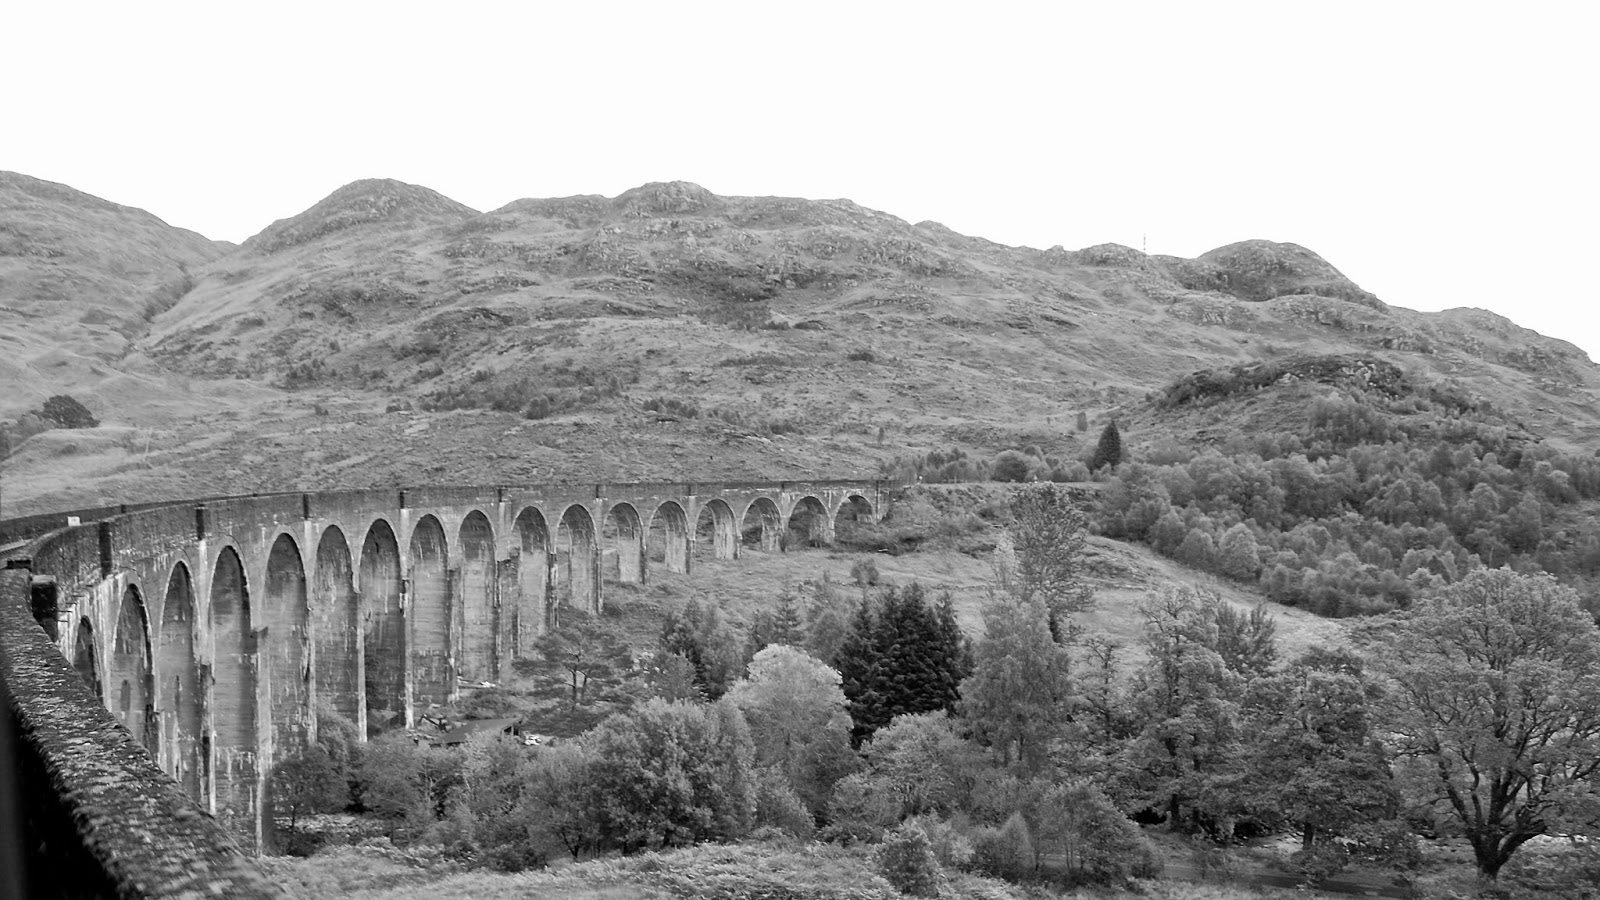 Glenfinnan Viaduct as view from the train